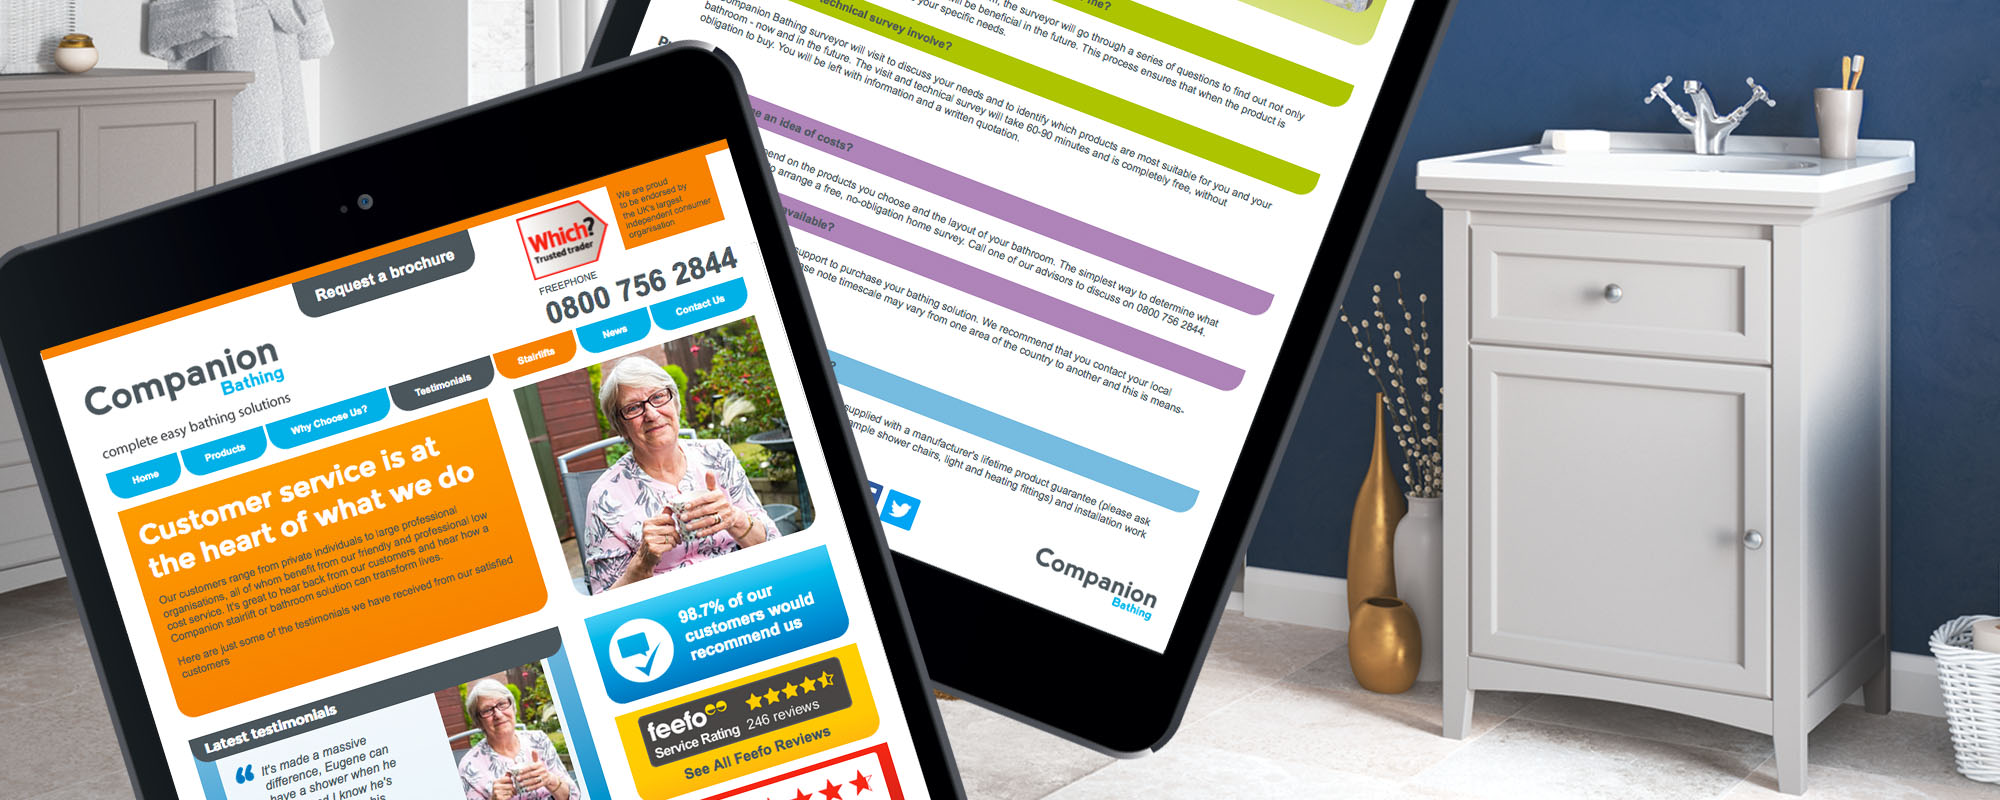 Direct Response Websites for Companion Stairlifts and Bathing